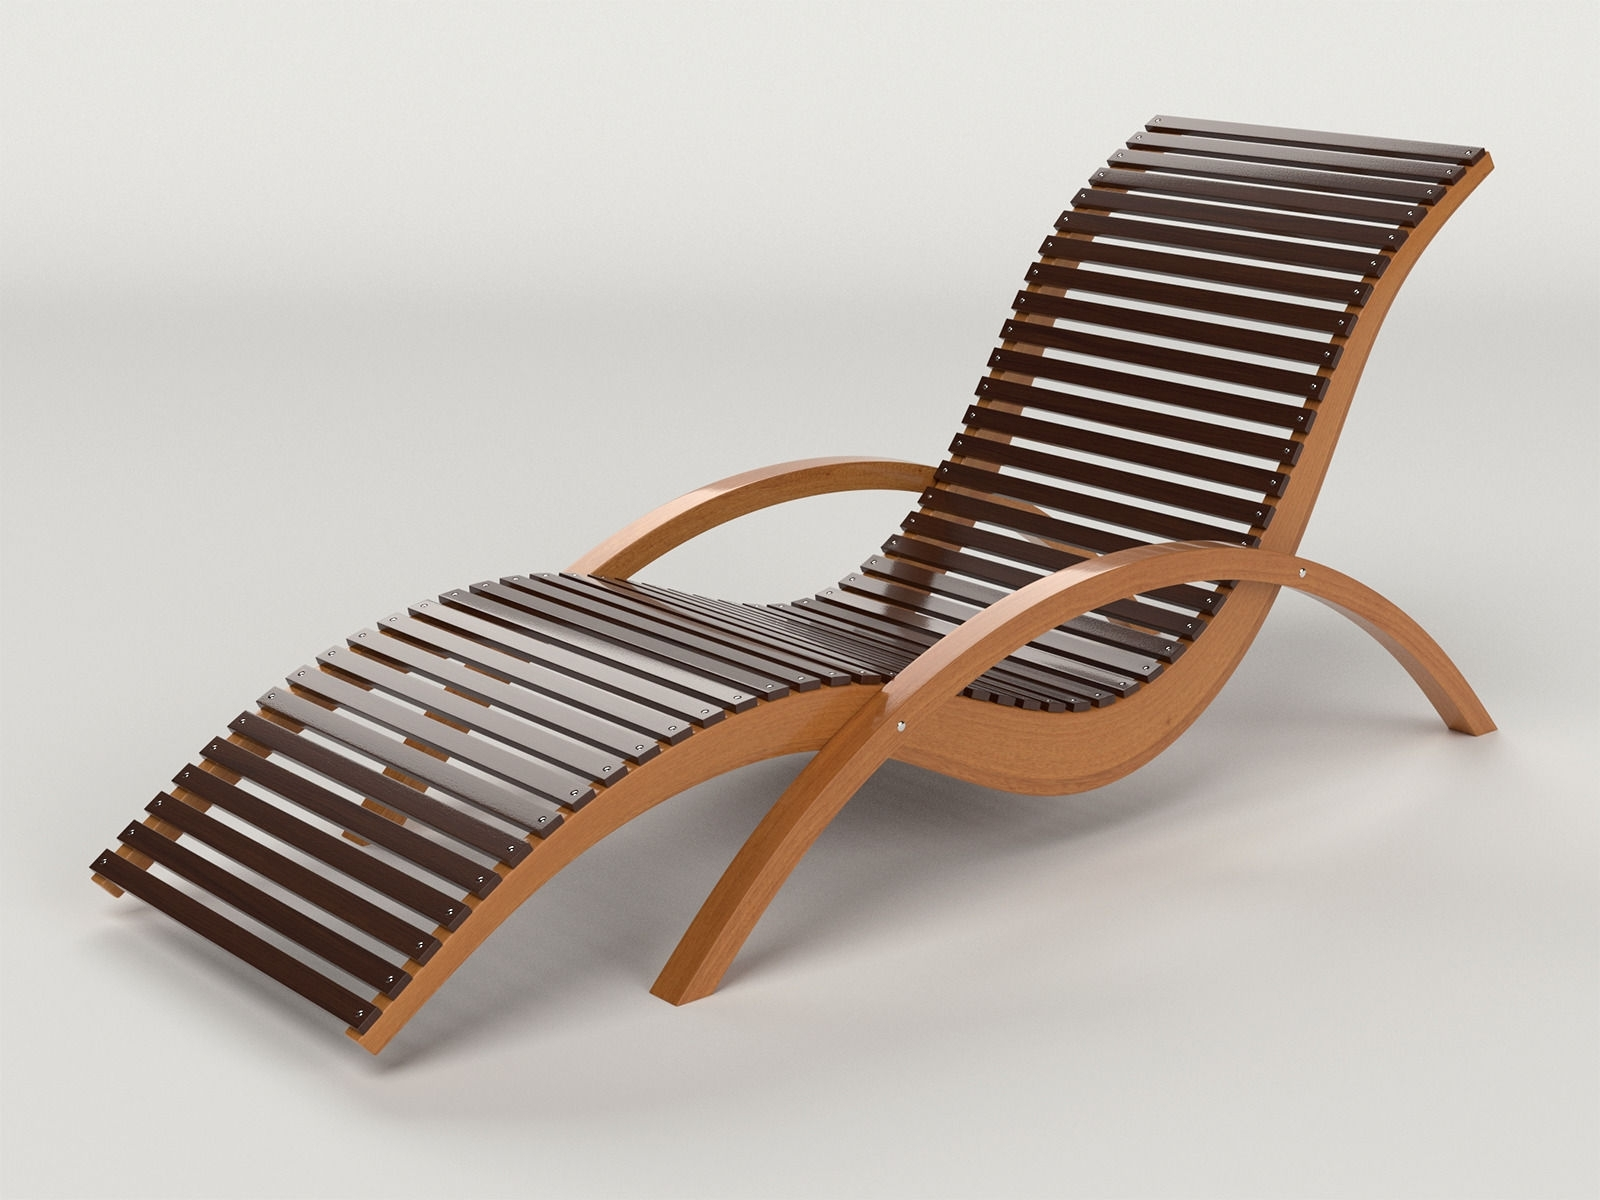 Lounge Chair : Folding Patio Chaise Lounge Chairs Patio Dining Pertaining To Best And Newest Chaise Lounge Chairs For Backyard (View 15 of 15)